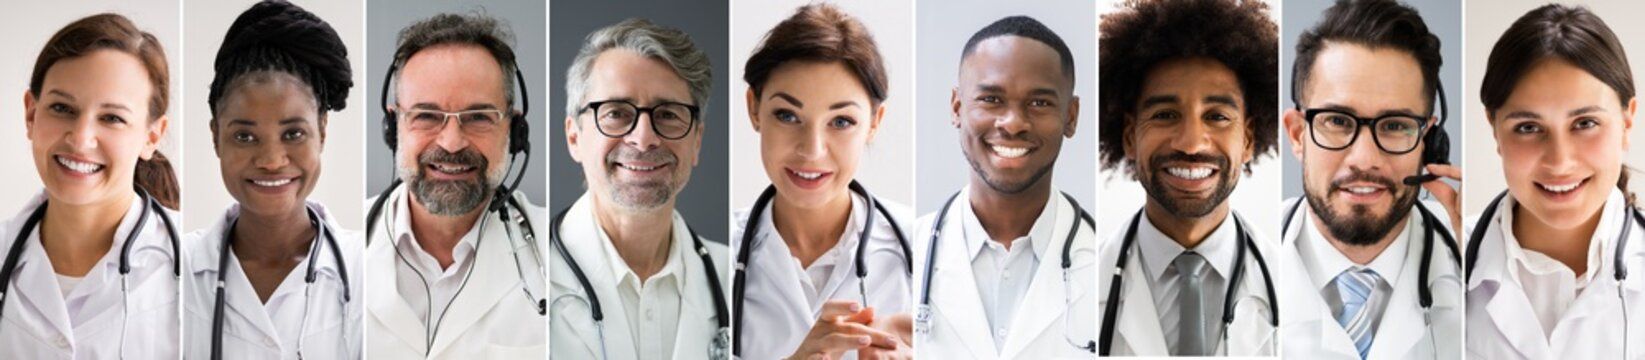 Multiethnic Doctor Faces Photo Collage